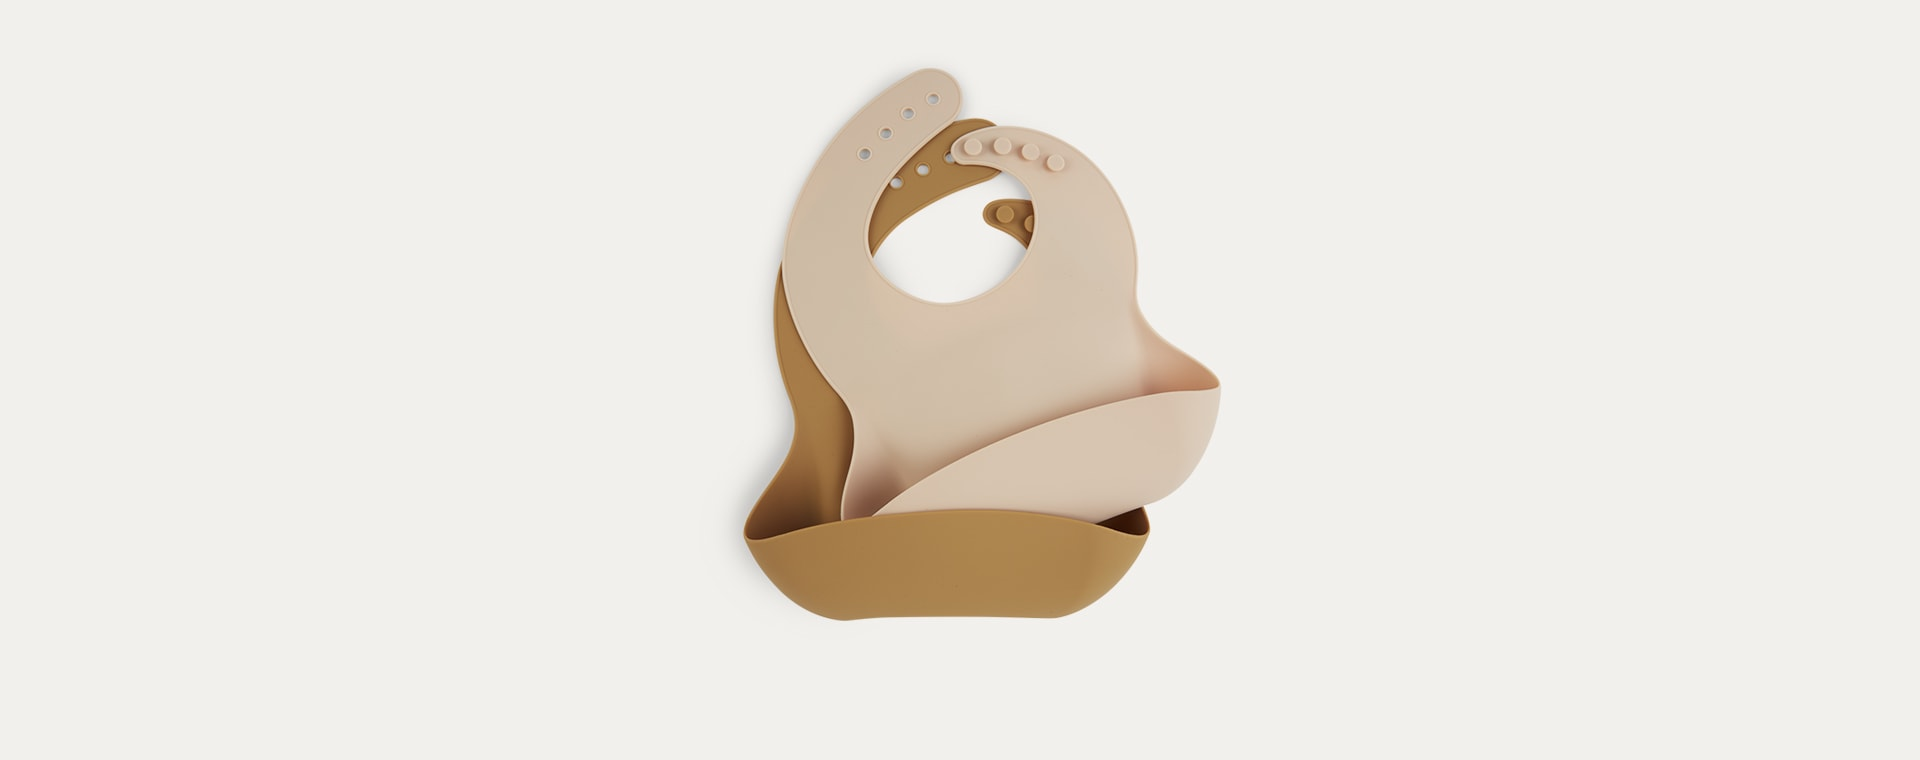 Toffee & Almond KIDLY Label Silicone Bib - 2 Pack